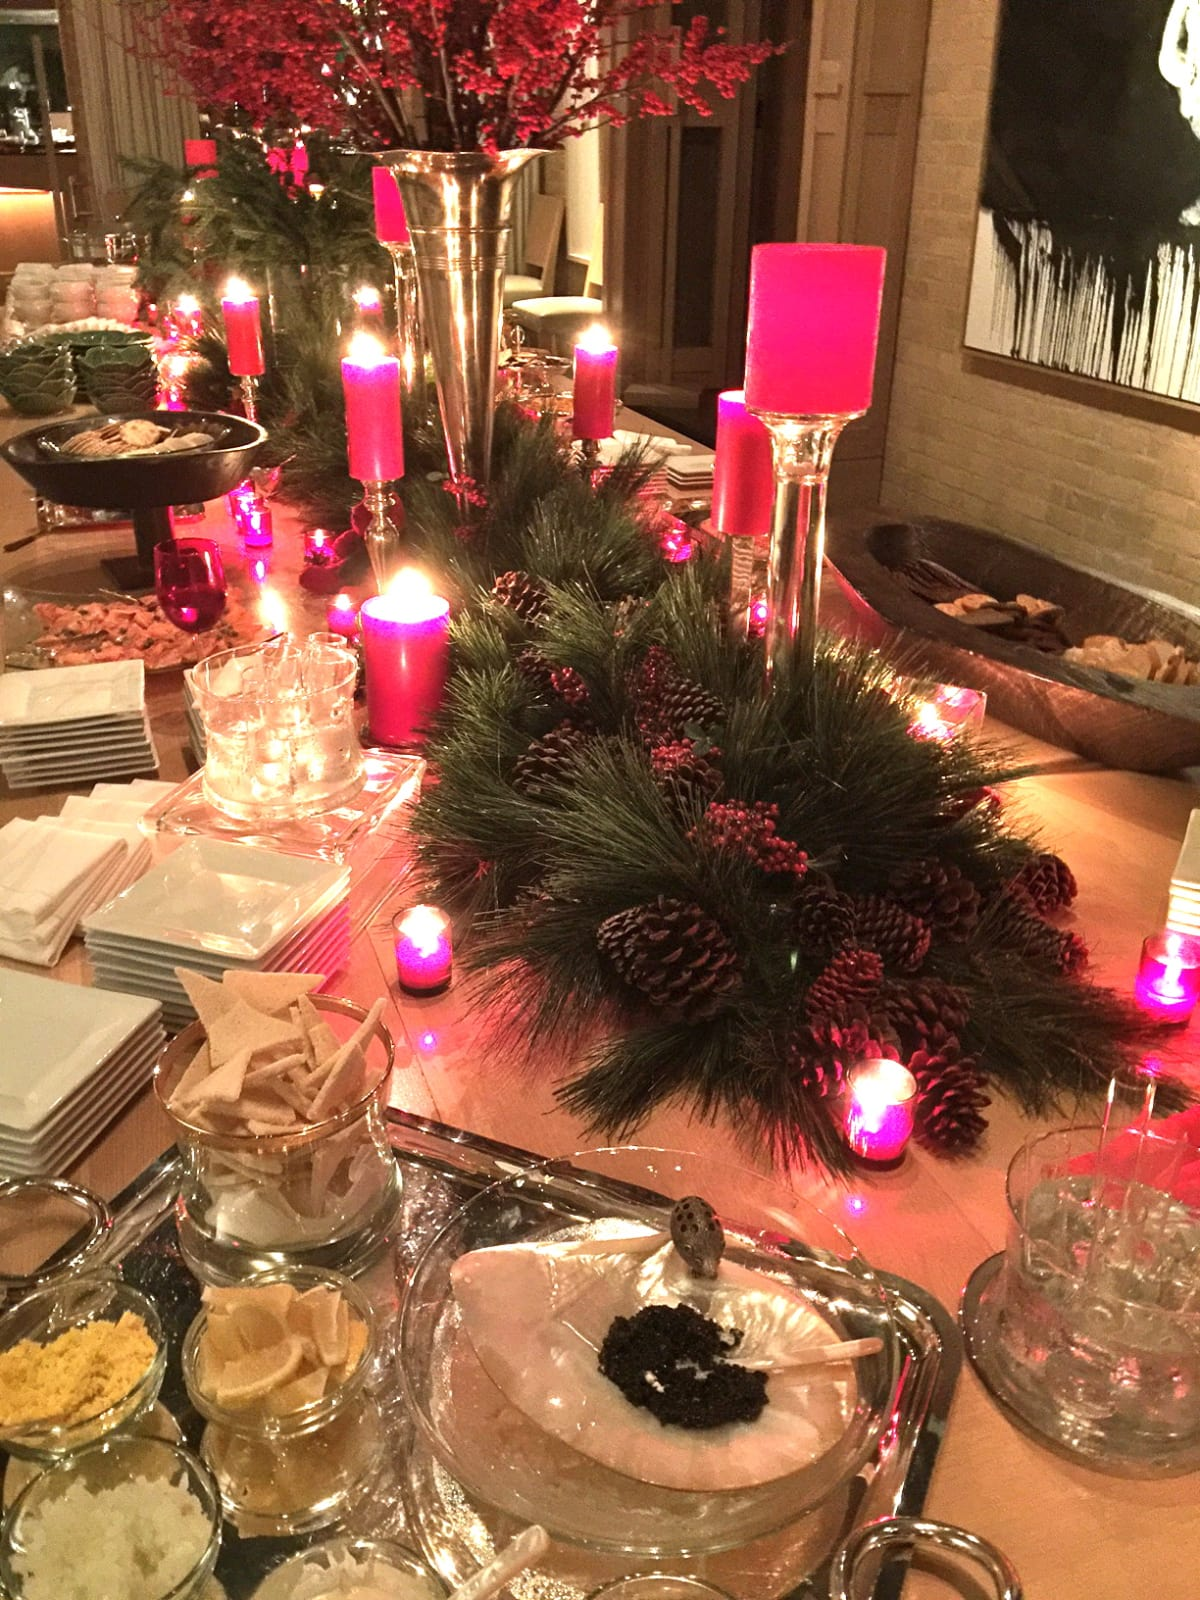 News, Table tops, shelby, Dec. 2015